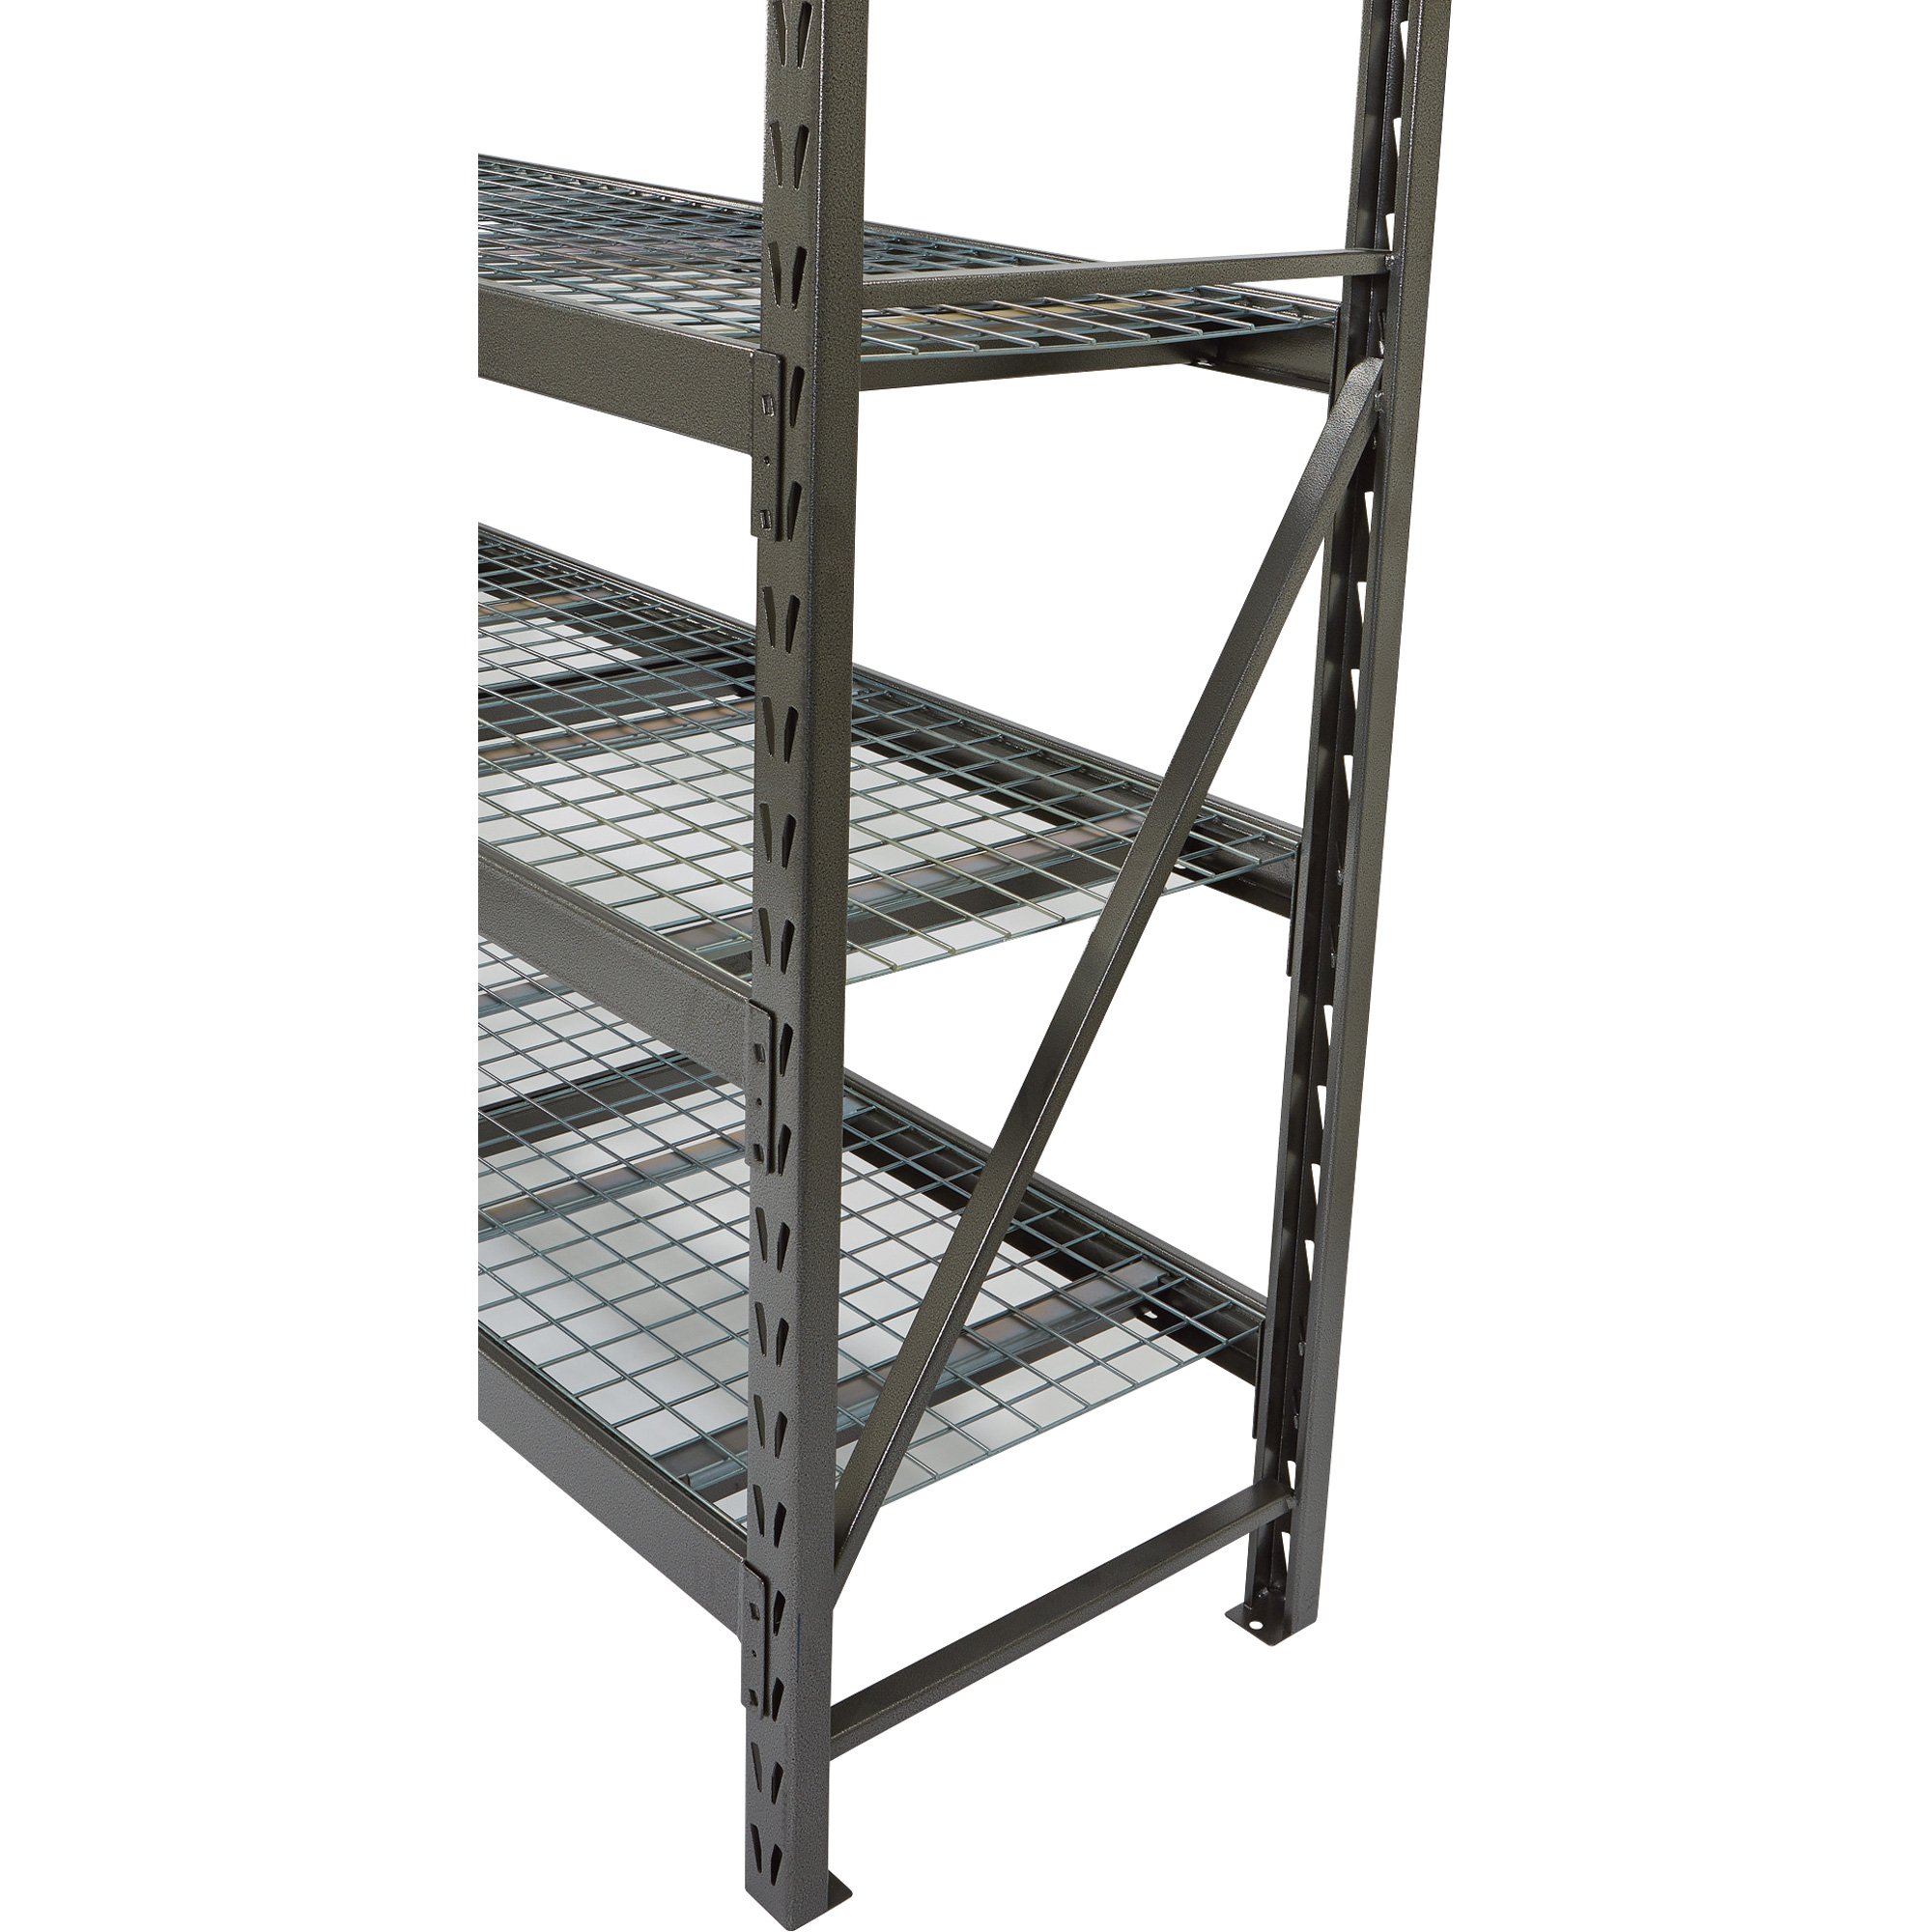 Strongway Steel Shelving — 72inw X 24ind X 72inh, 4 Shelves